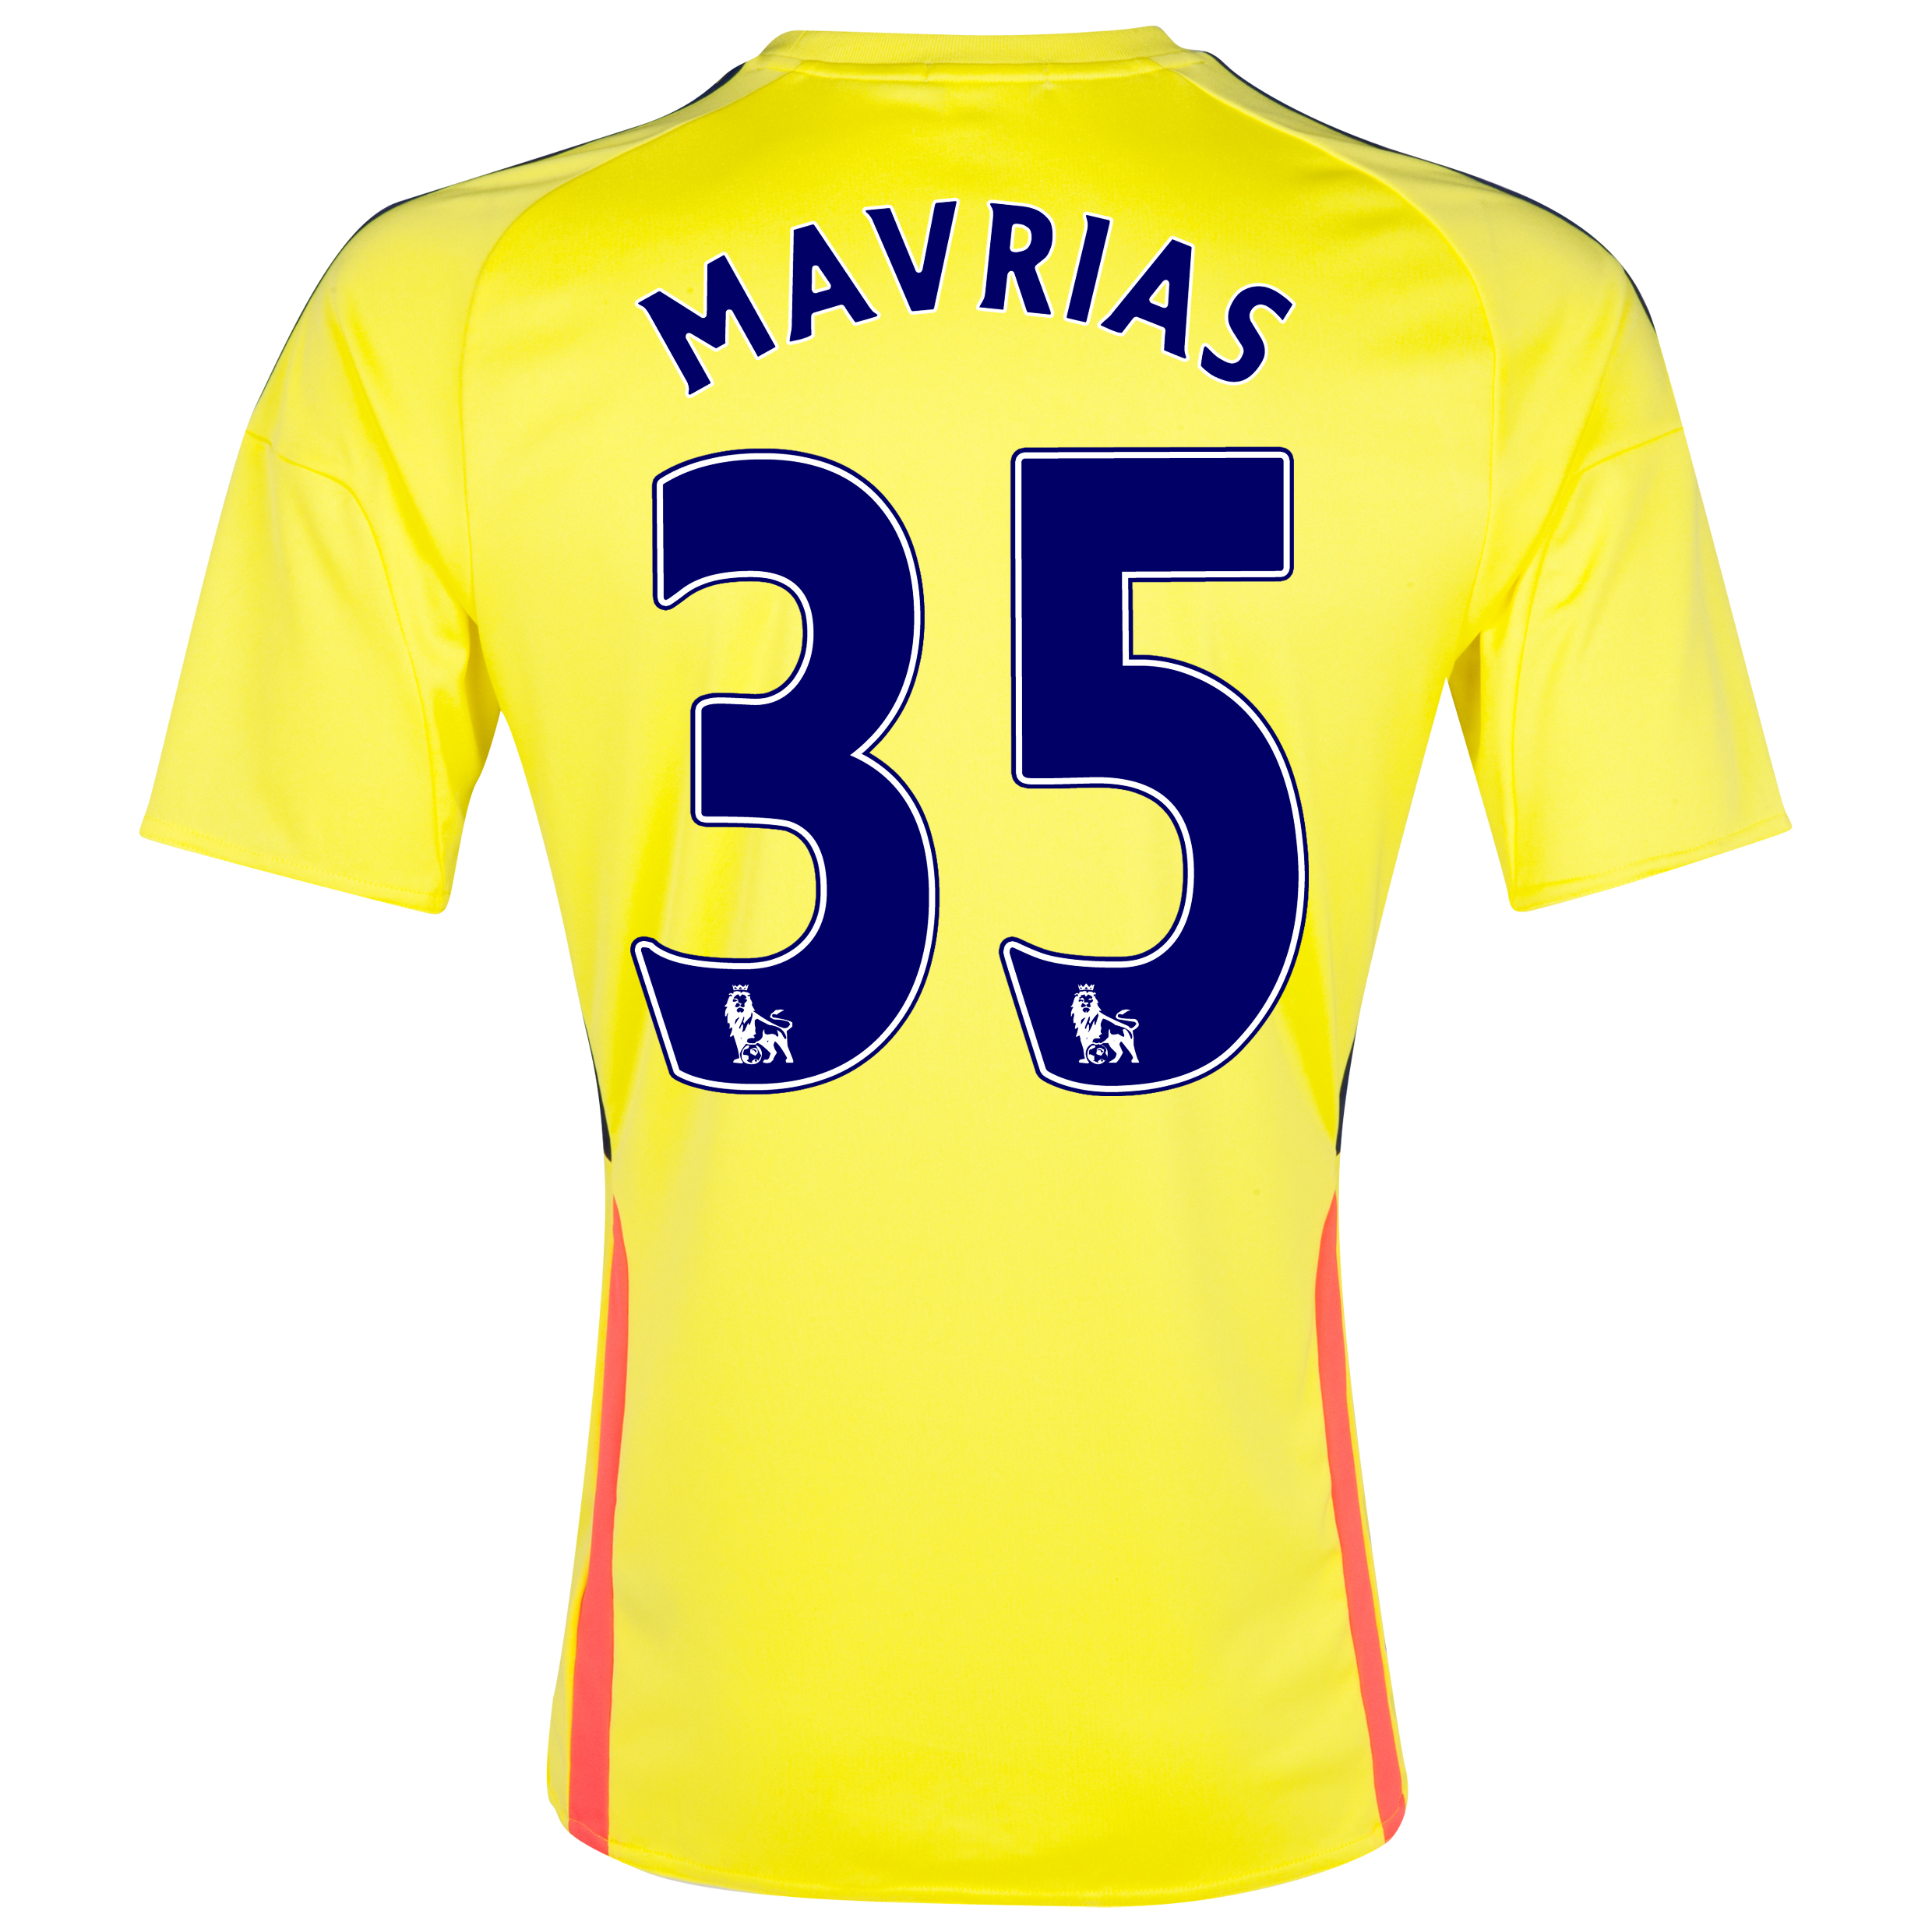 Sunderland Away Shirt 2013/14 with Mavrias 35 printing